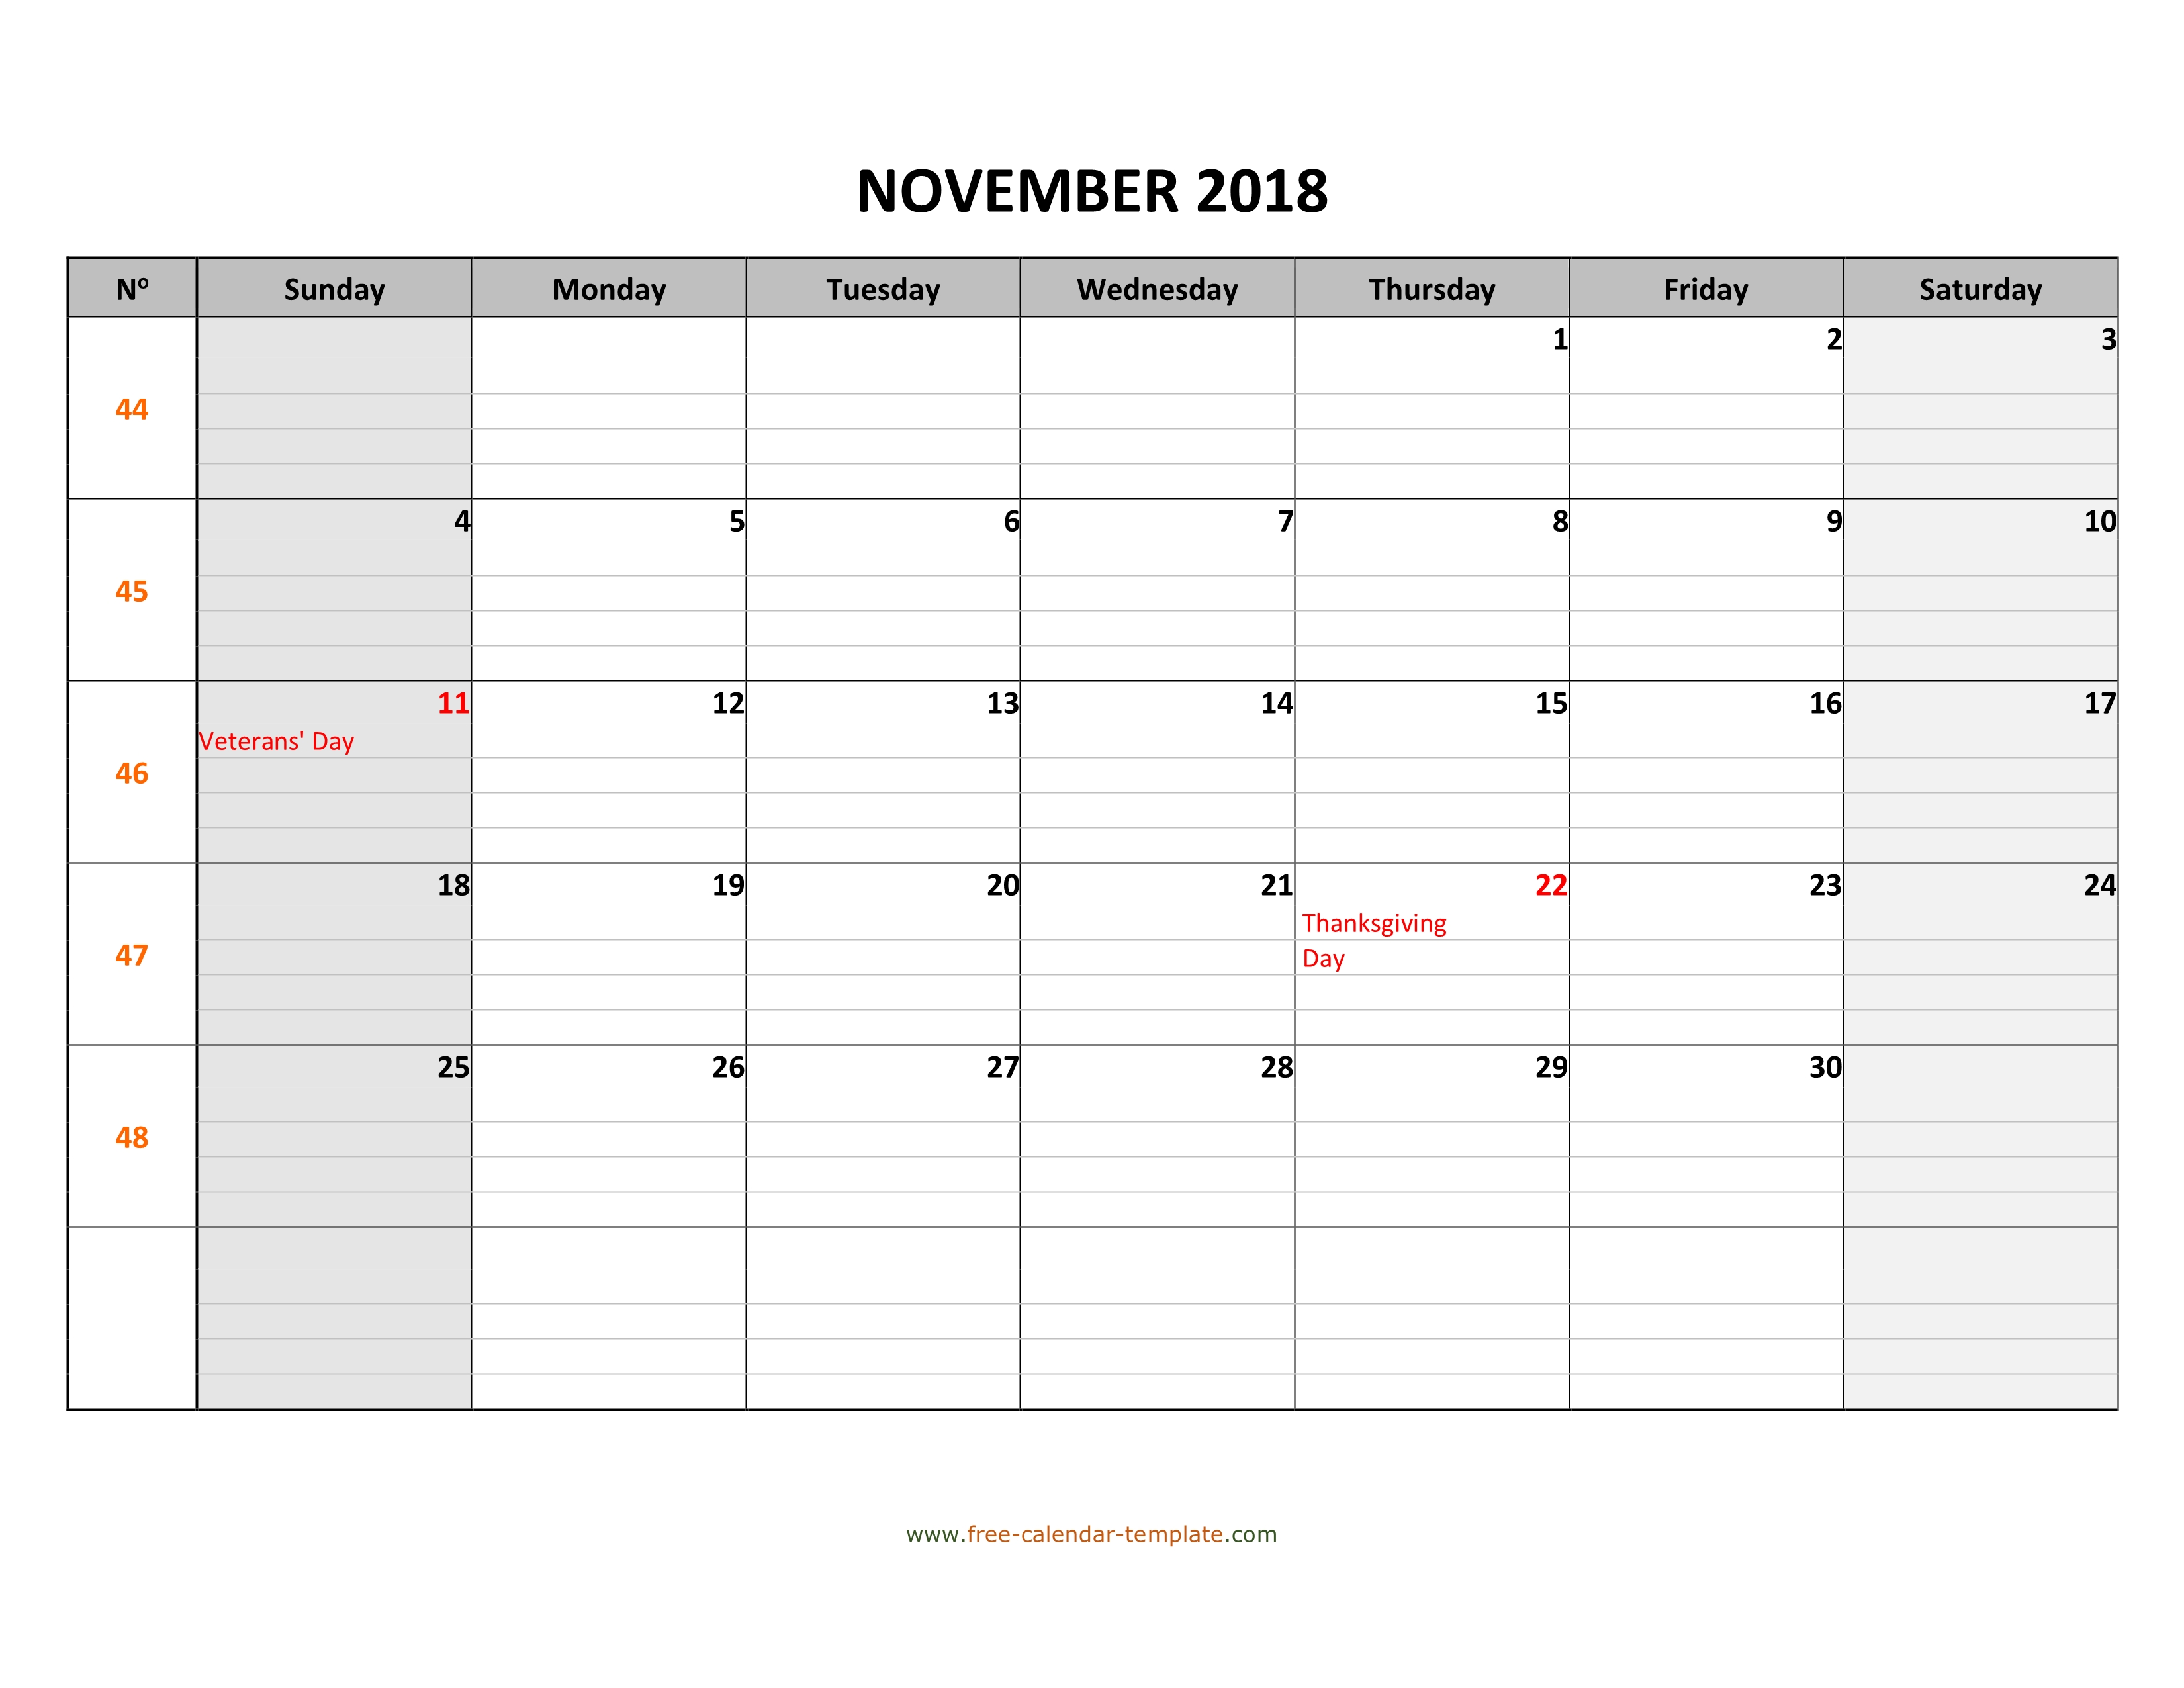 image about Printable November Calendar identified as November 2018 Calendar Free of charge Printable with grid strains